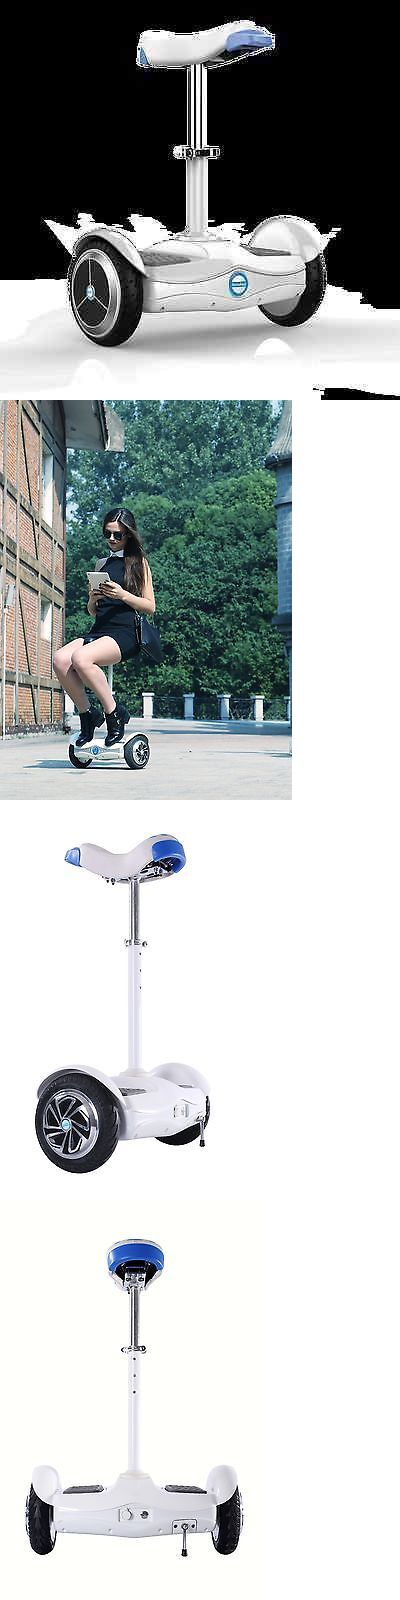 Skateboards-Complete 16264: Open Box Airwheel S6 Motorized Moped Electric Scooter With Seat 2 Wheels -> BUY IT NOW ONLY: $499.99 on eBay!